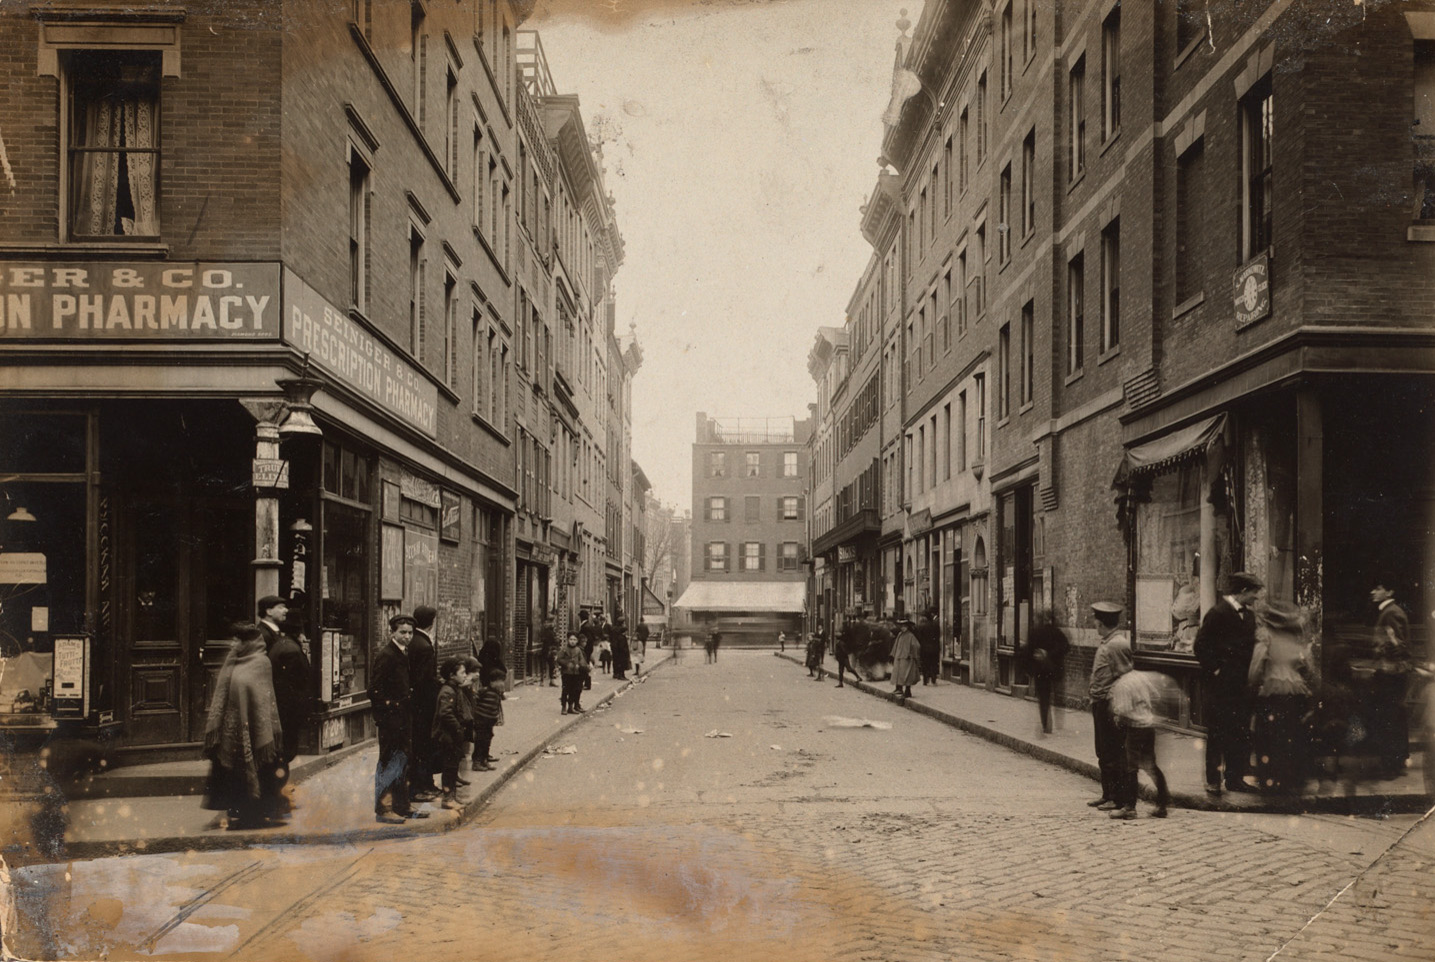 Chambers and Spring looking to Leverett, 1910